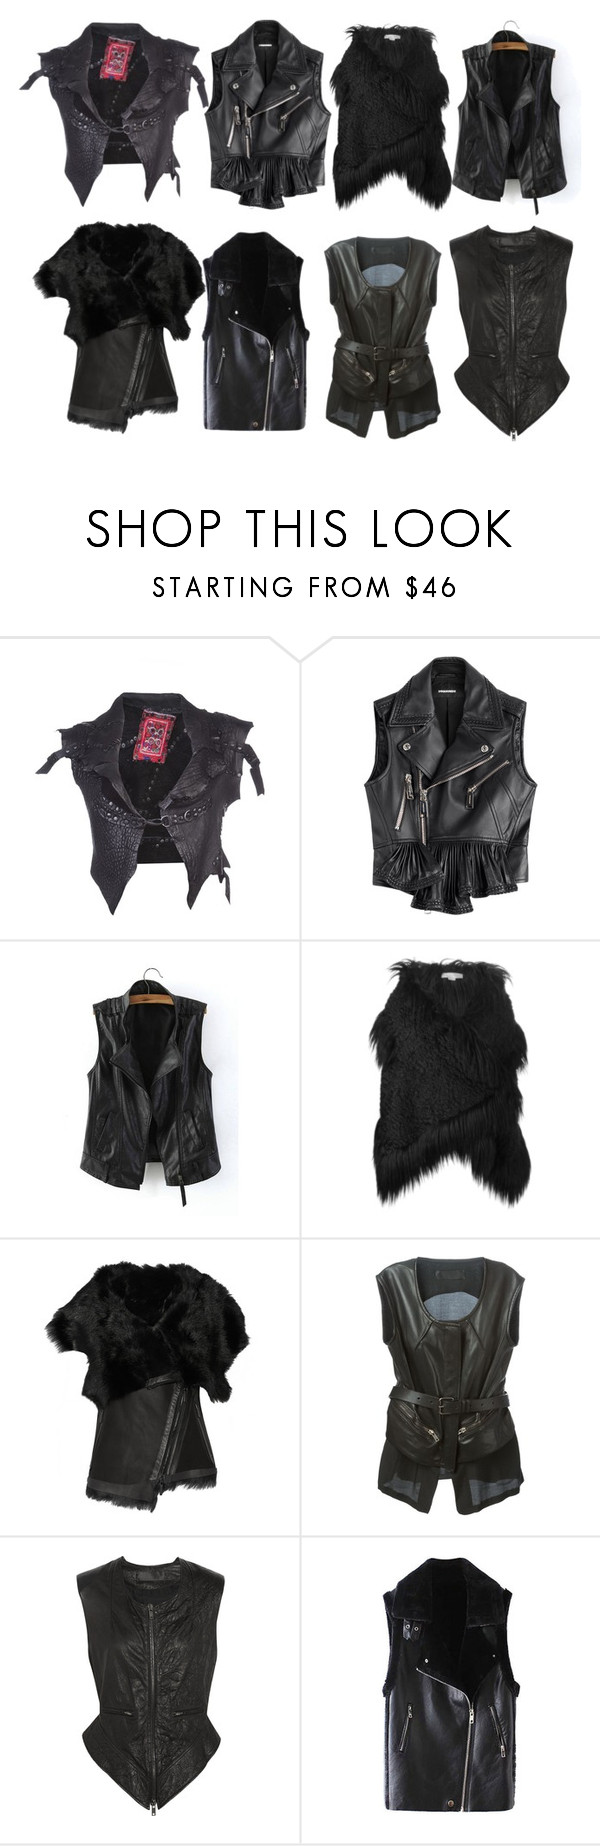 """Vests-5: Fur & Cuir"" by lorika-borika on Polyvore featuring мода, B*+S, Dsquared2, STELLA McCARTNEY, Karl Donoghue, Haider Ackermann, women's clothing, women, female и woman"